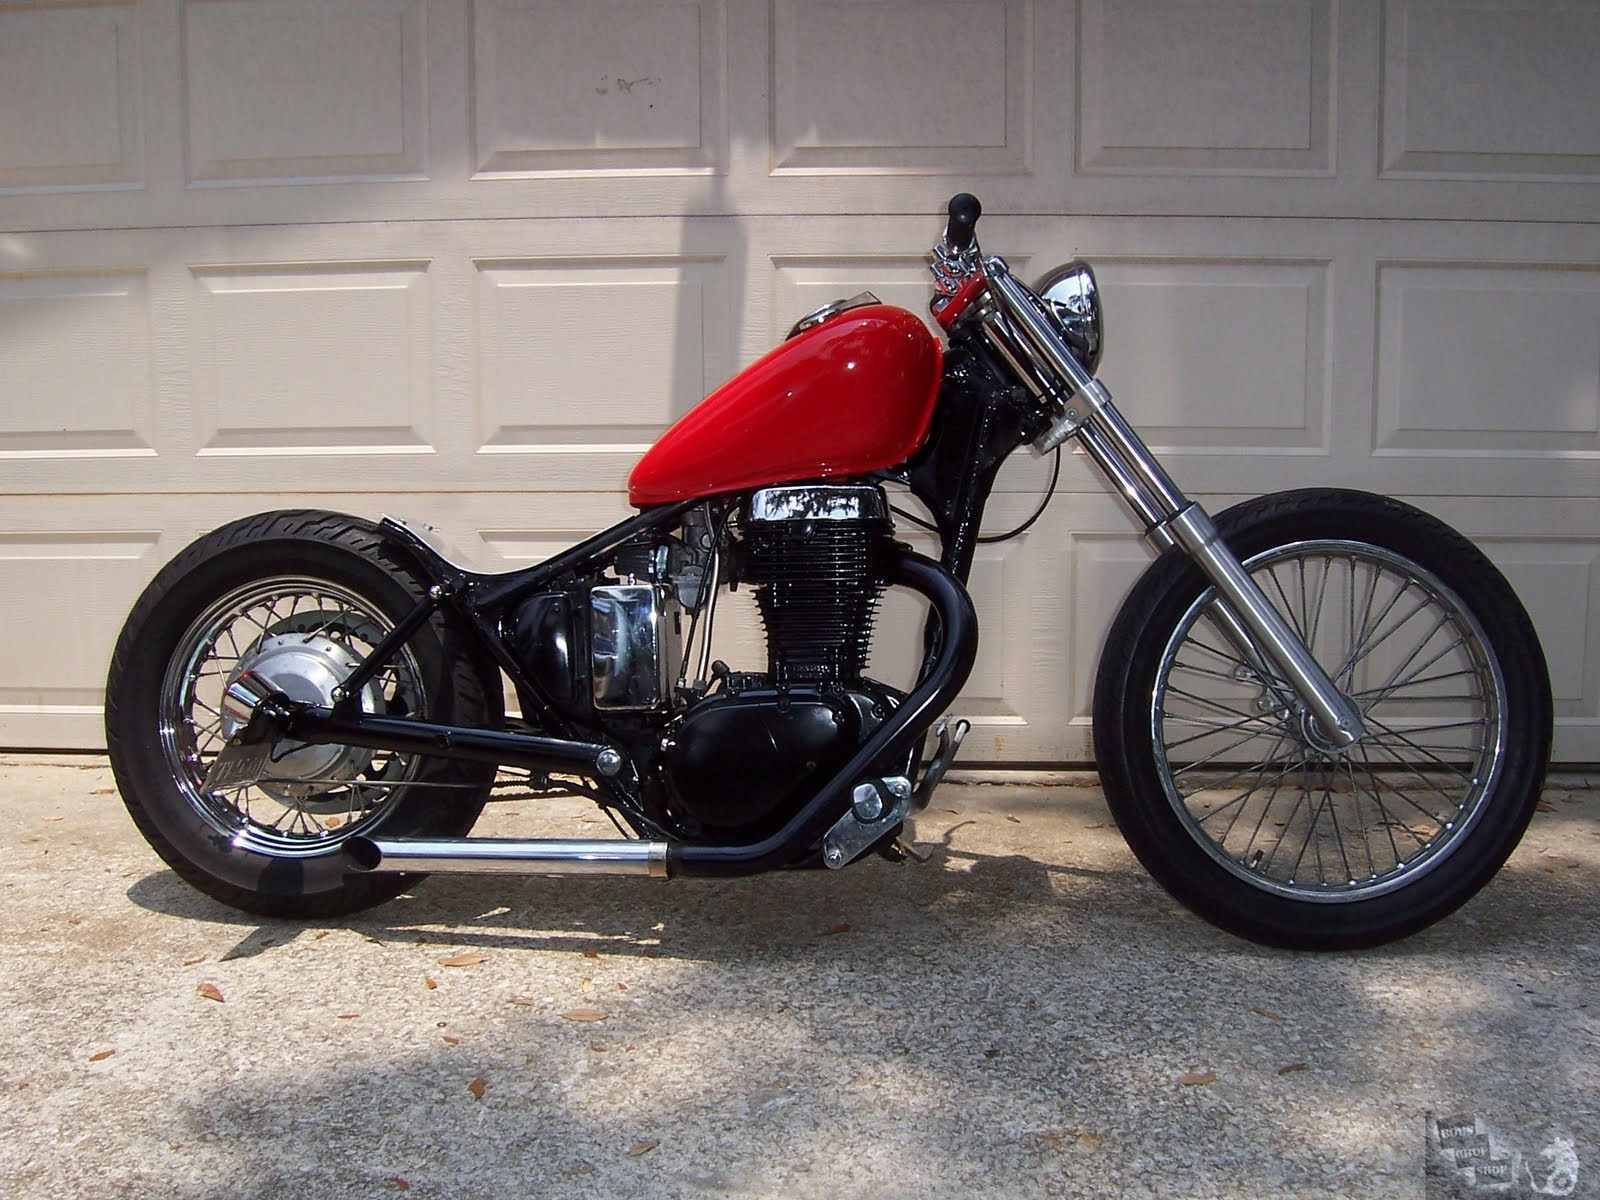 cafe racer special suzuki savage ls650 bobber. Black Bedroom Furniture Sets. Home Design Ideas